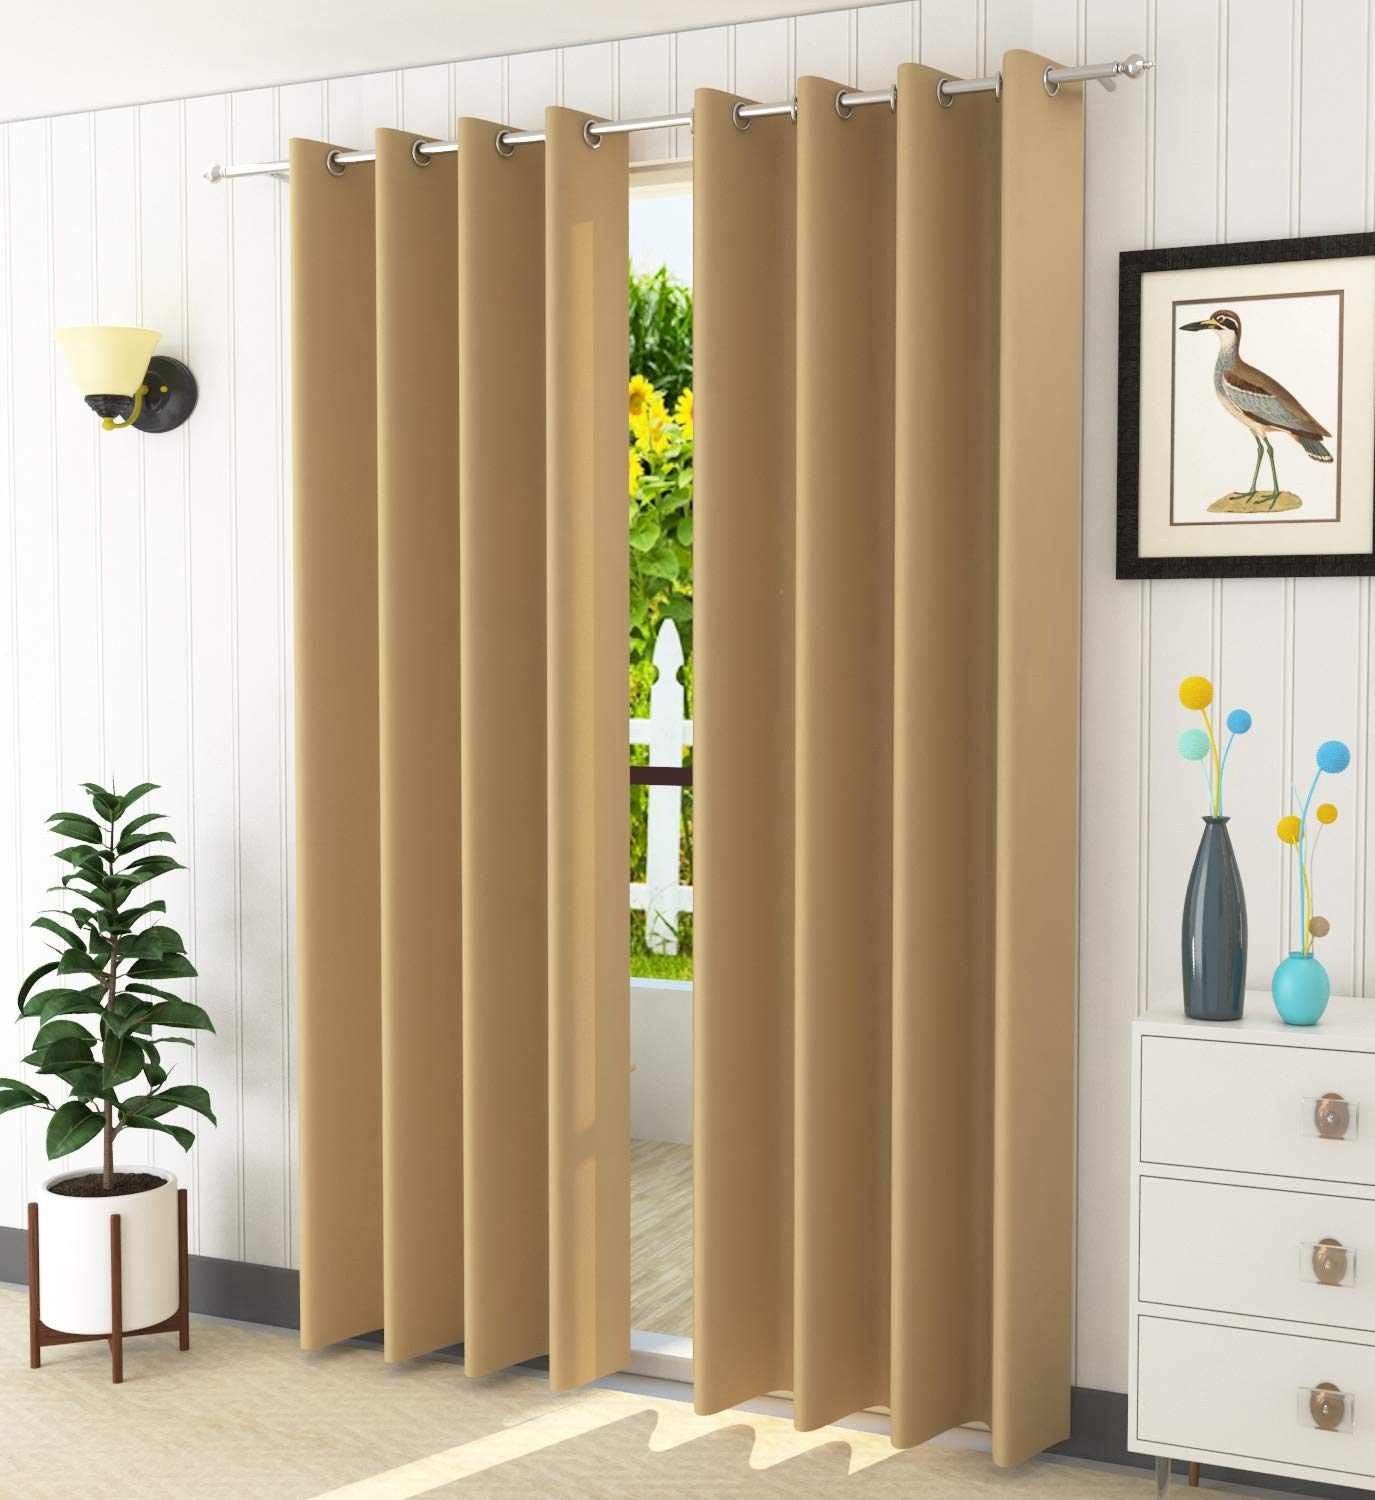 LaVichitra Blackout Curtains